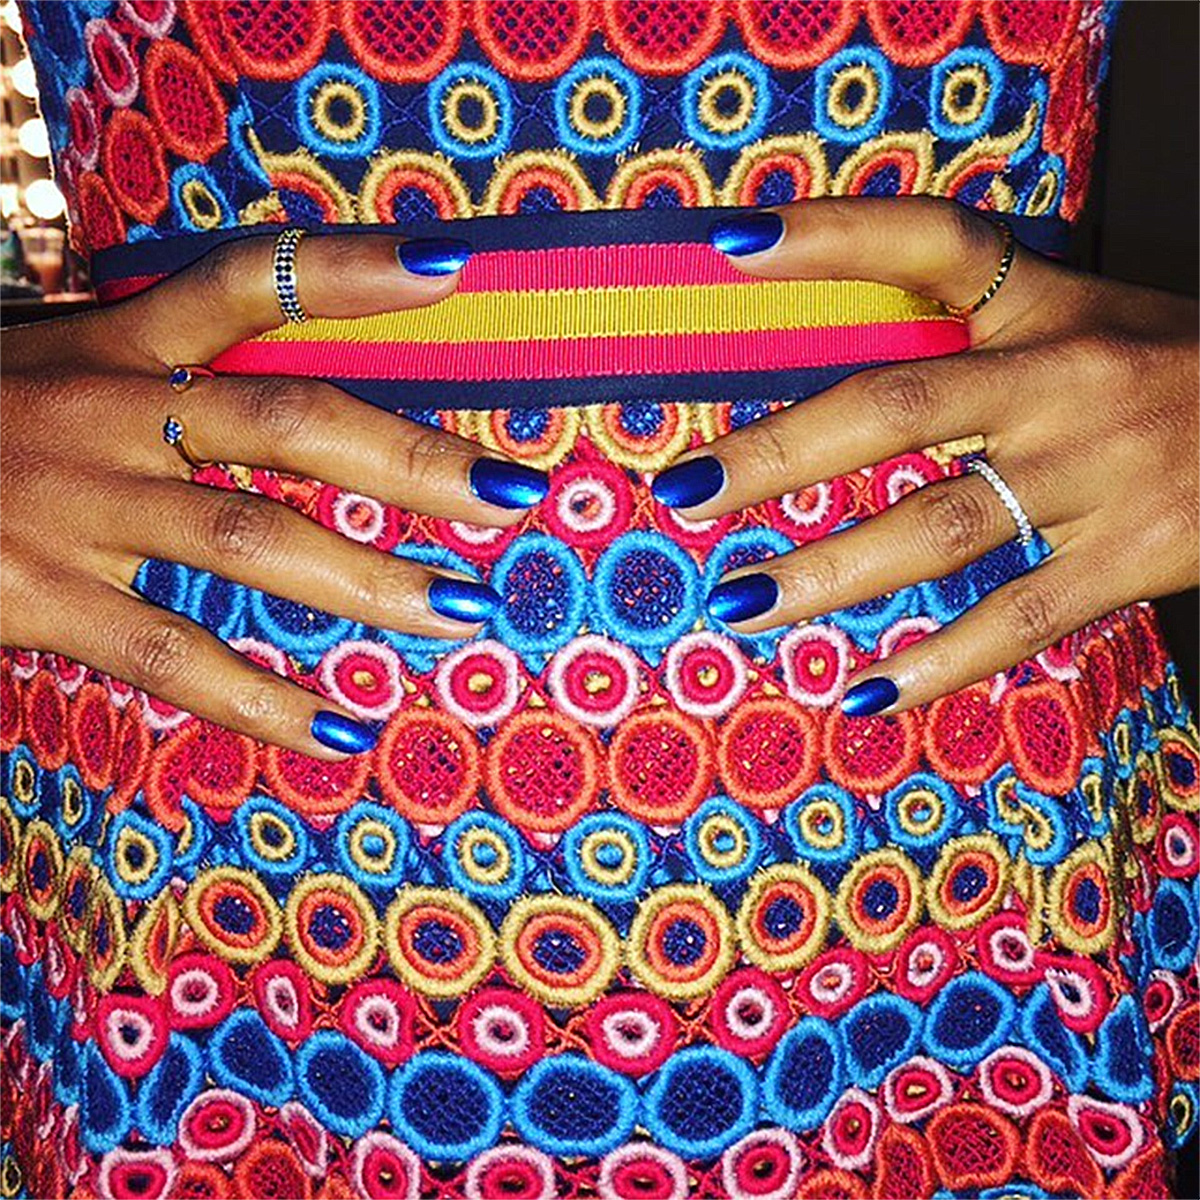 Color Inspiration - Kerry Washington colorful embroidery print dress blue nails opi manicure jimmy kimmel bg